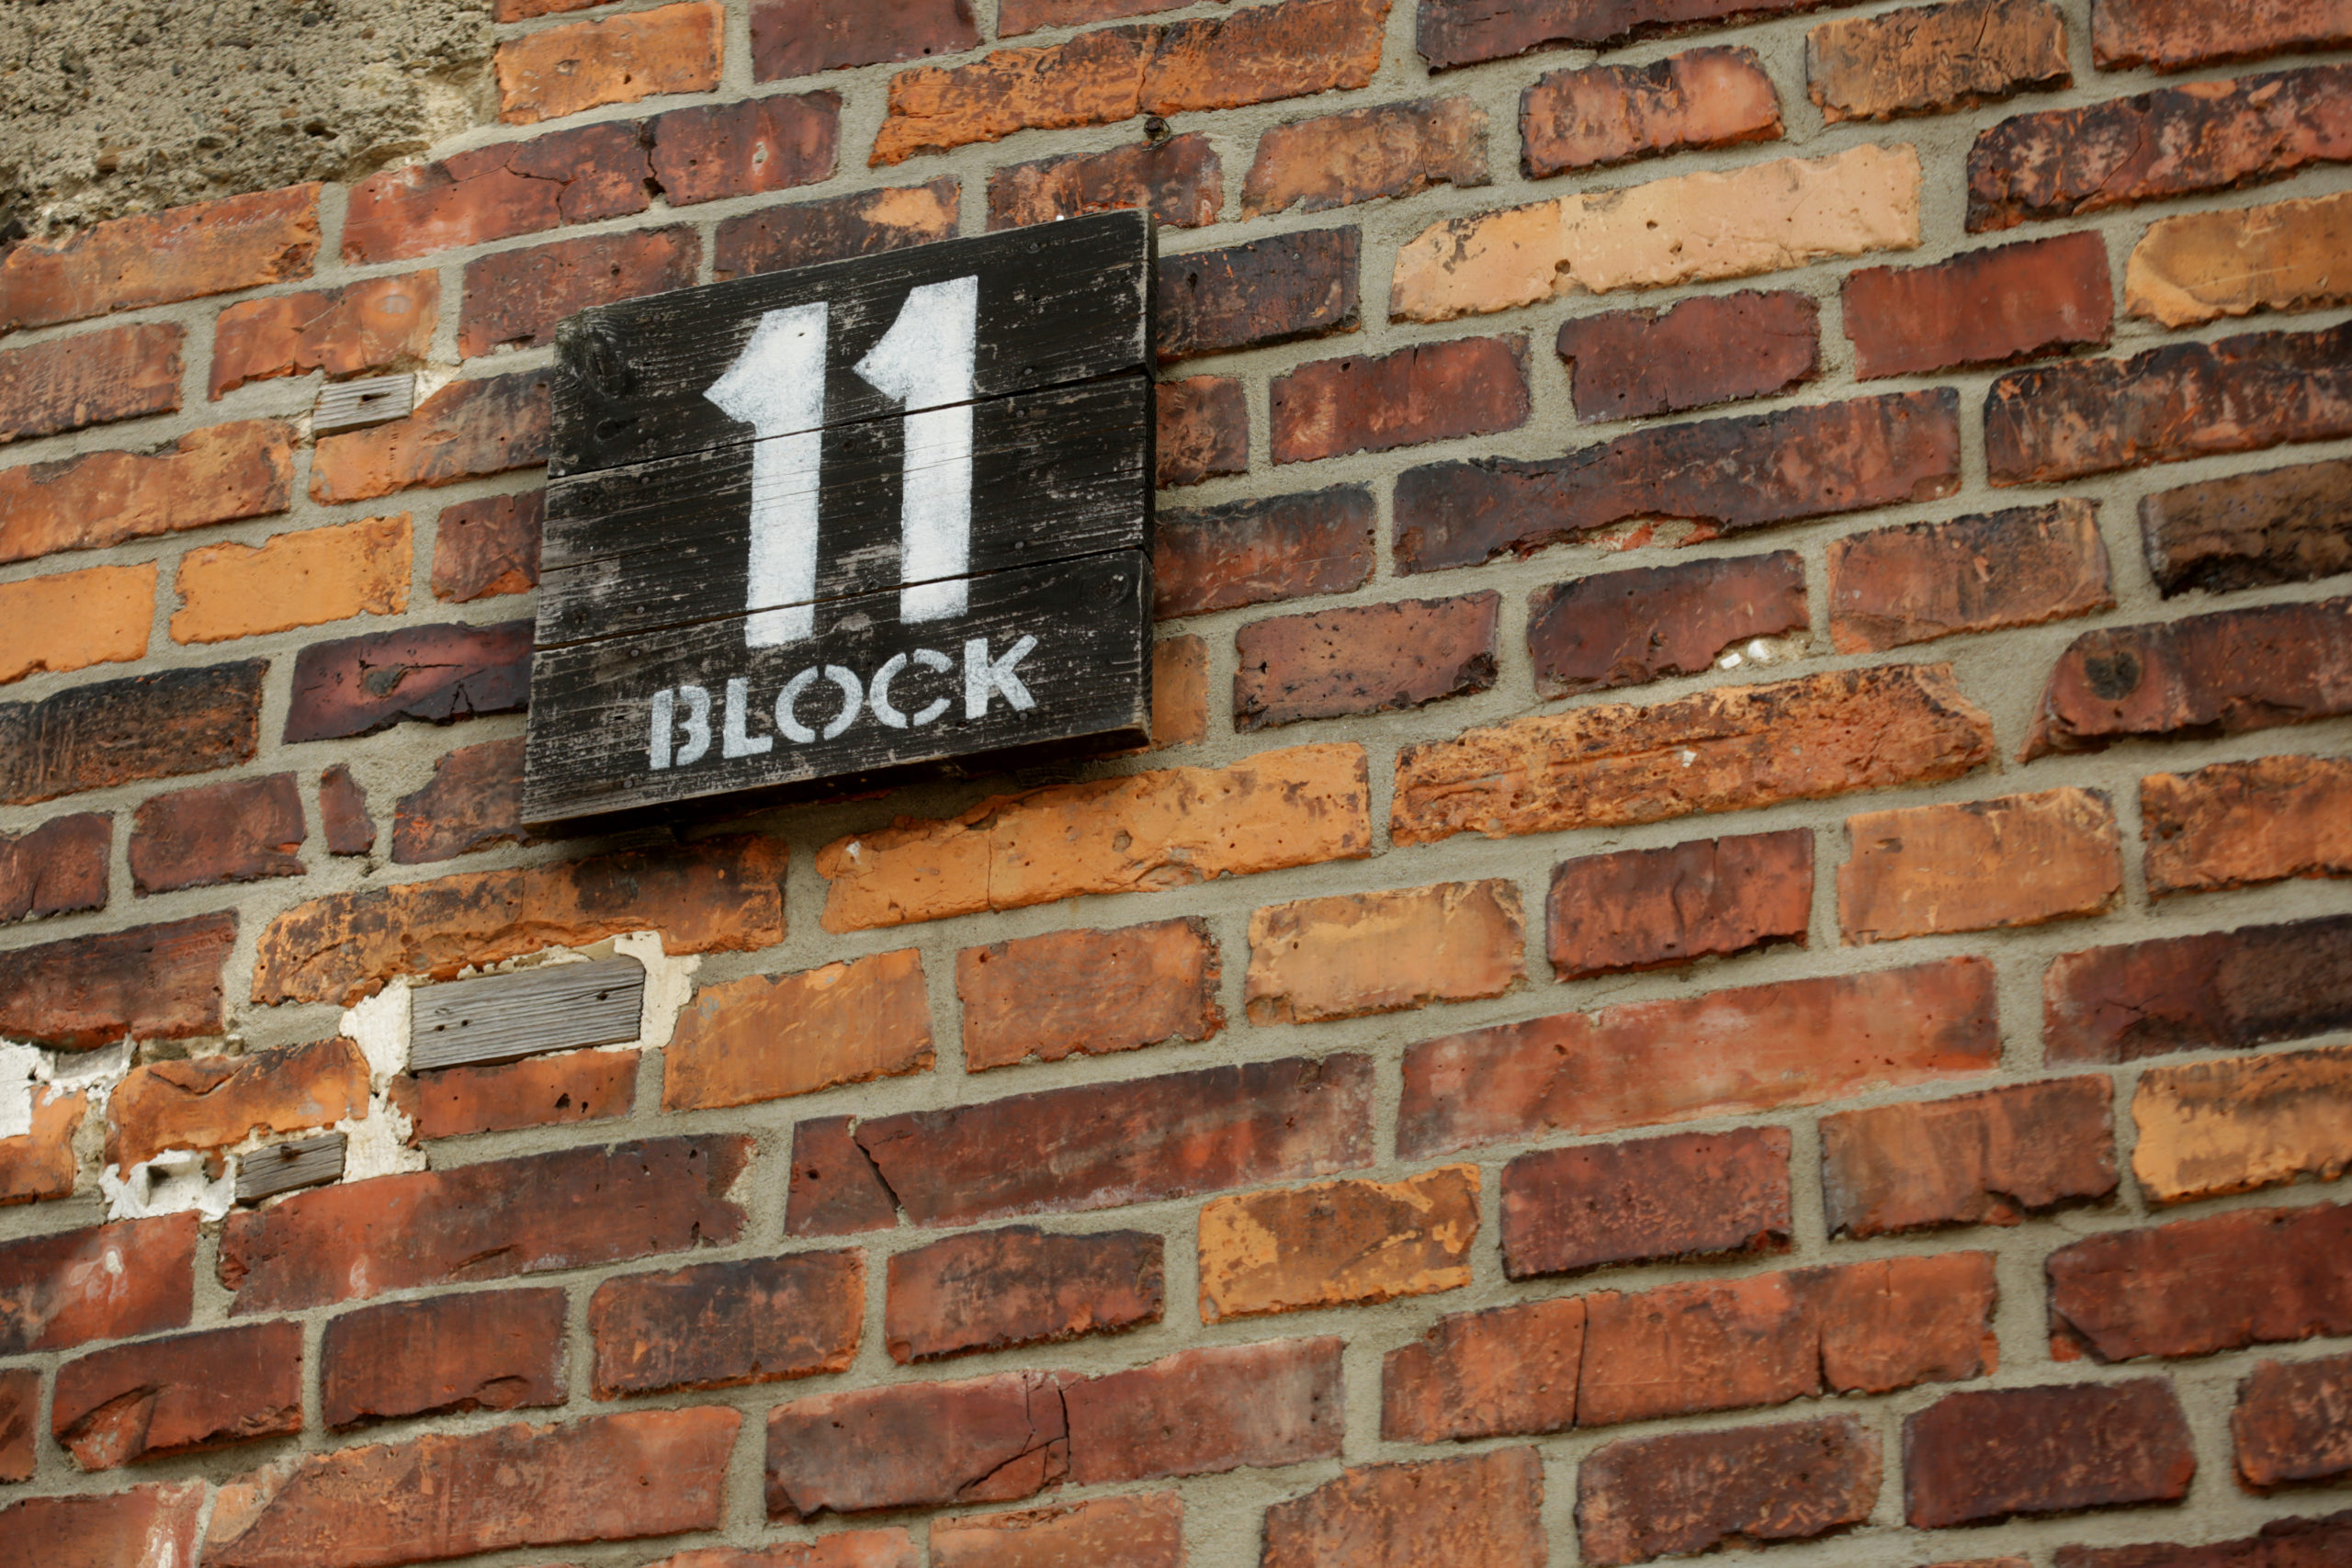 Sign of Block 11; photo taken by Jaroslaw Praszkiewicz.